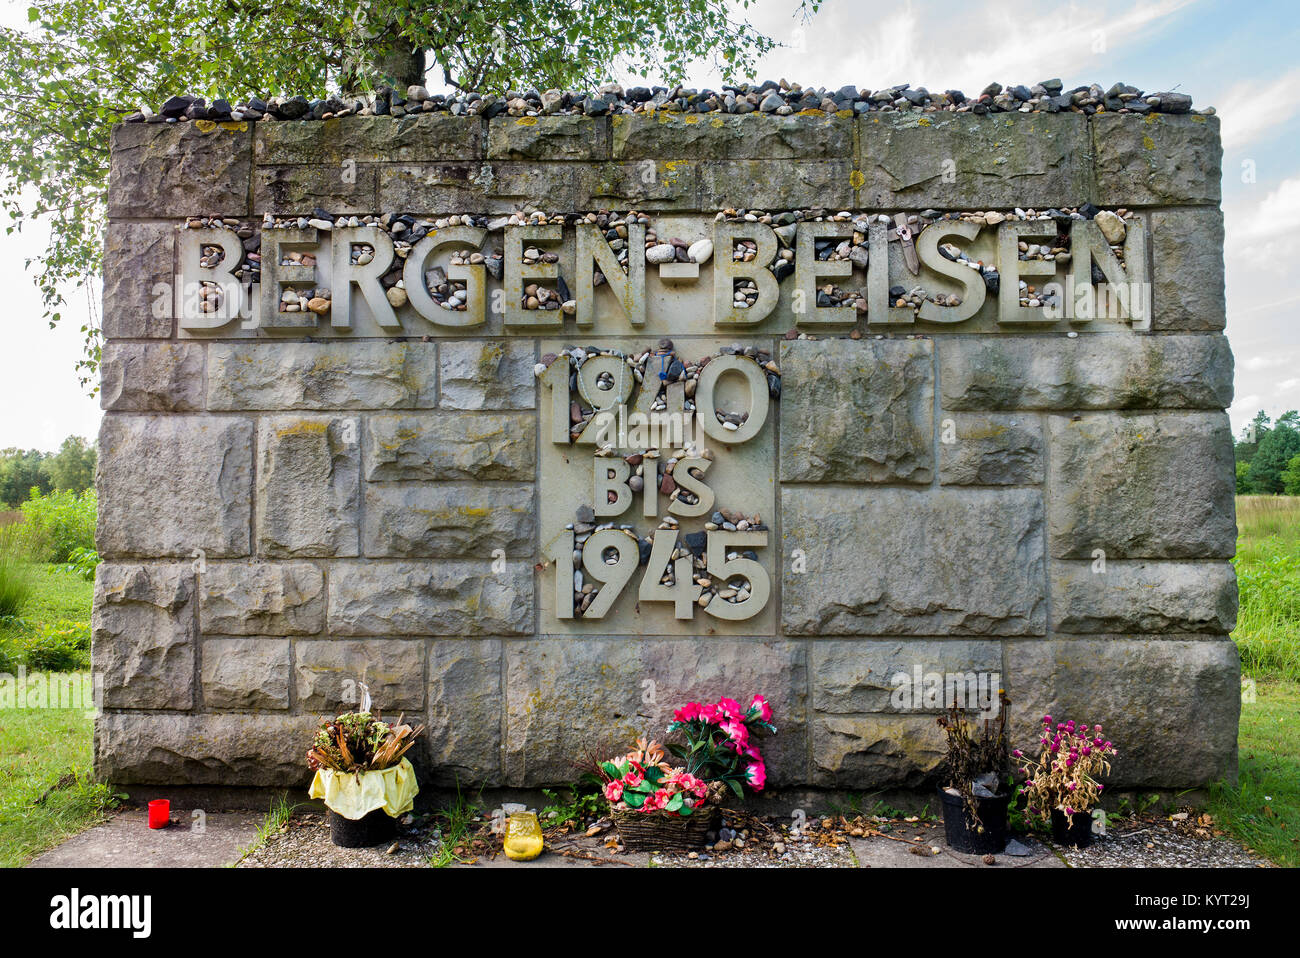 jewish memorial at Belsen-Bergen 'Earth conceal not the blood shed on thee' thirty thousand jews exterminated - Stock Image